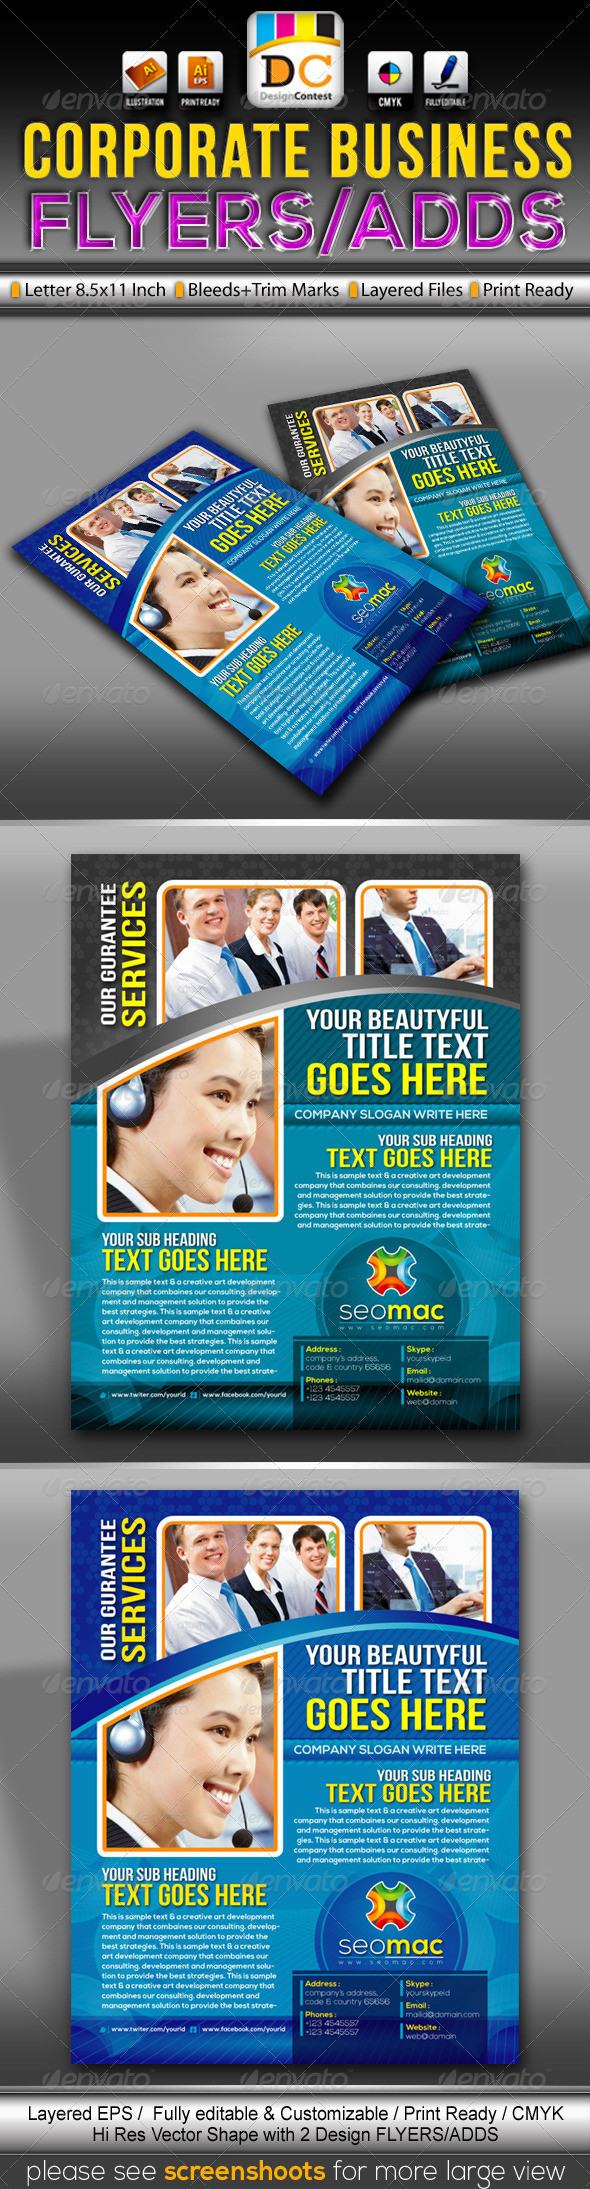 SeoMac Corporate Business Flyers/Adds  - Corporate Flyers